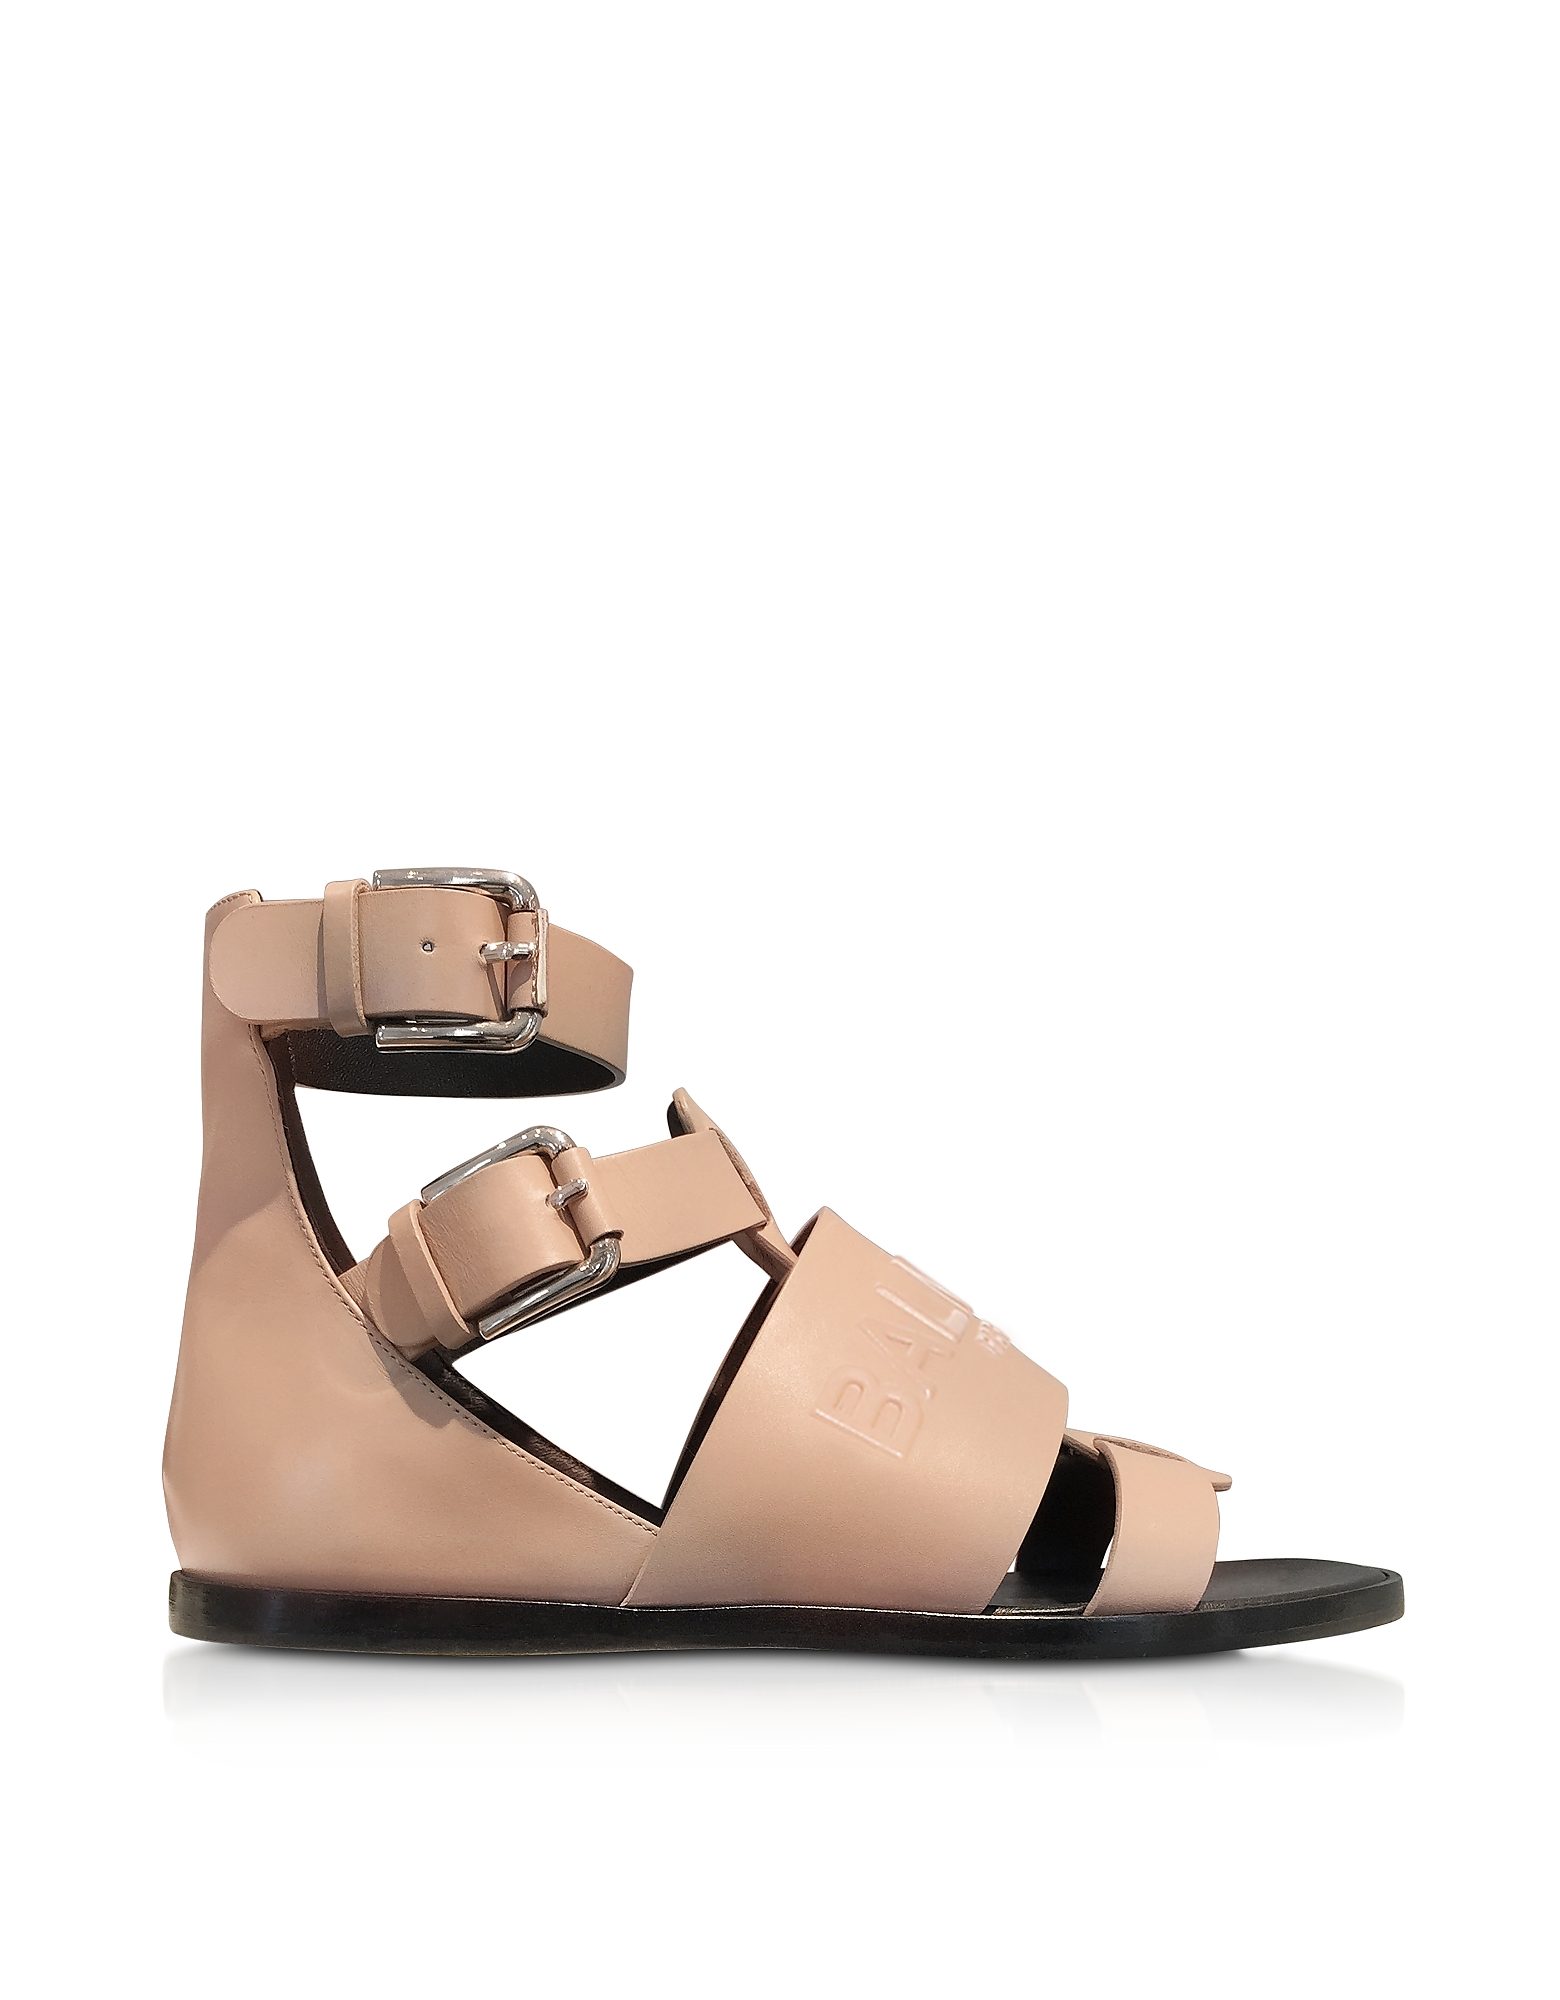 Balmain Shoes, Powder Pink Leather Clothilde Flat Sandals